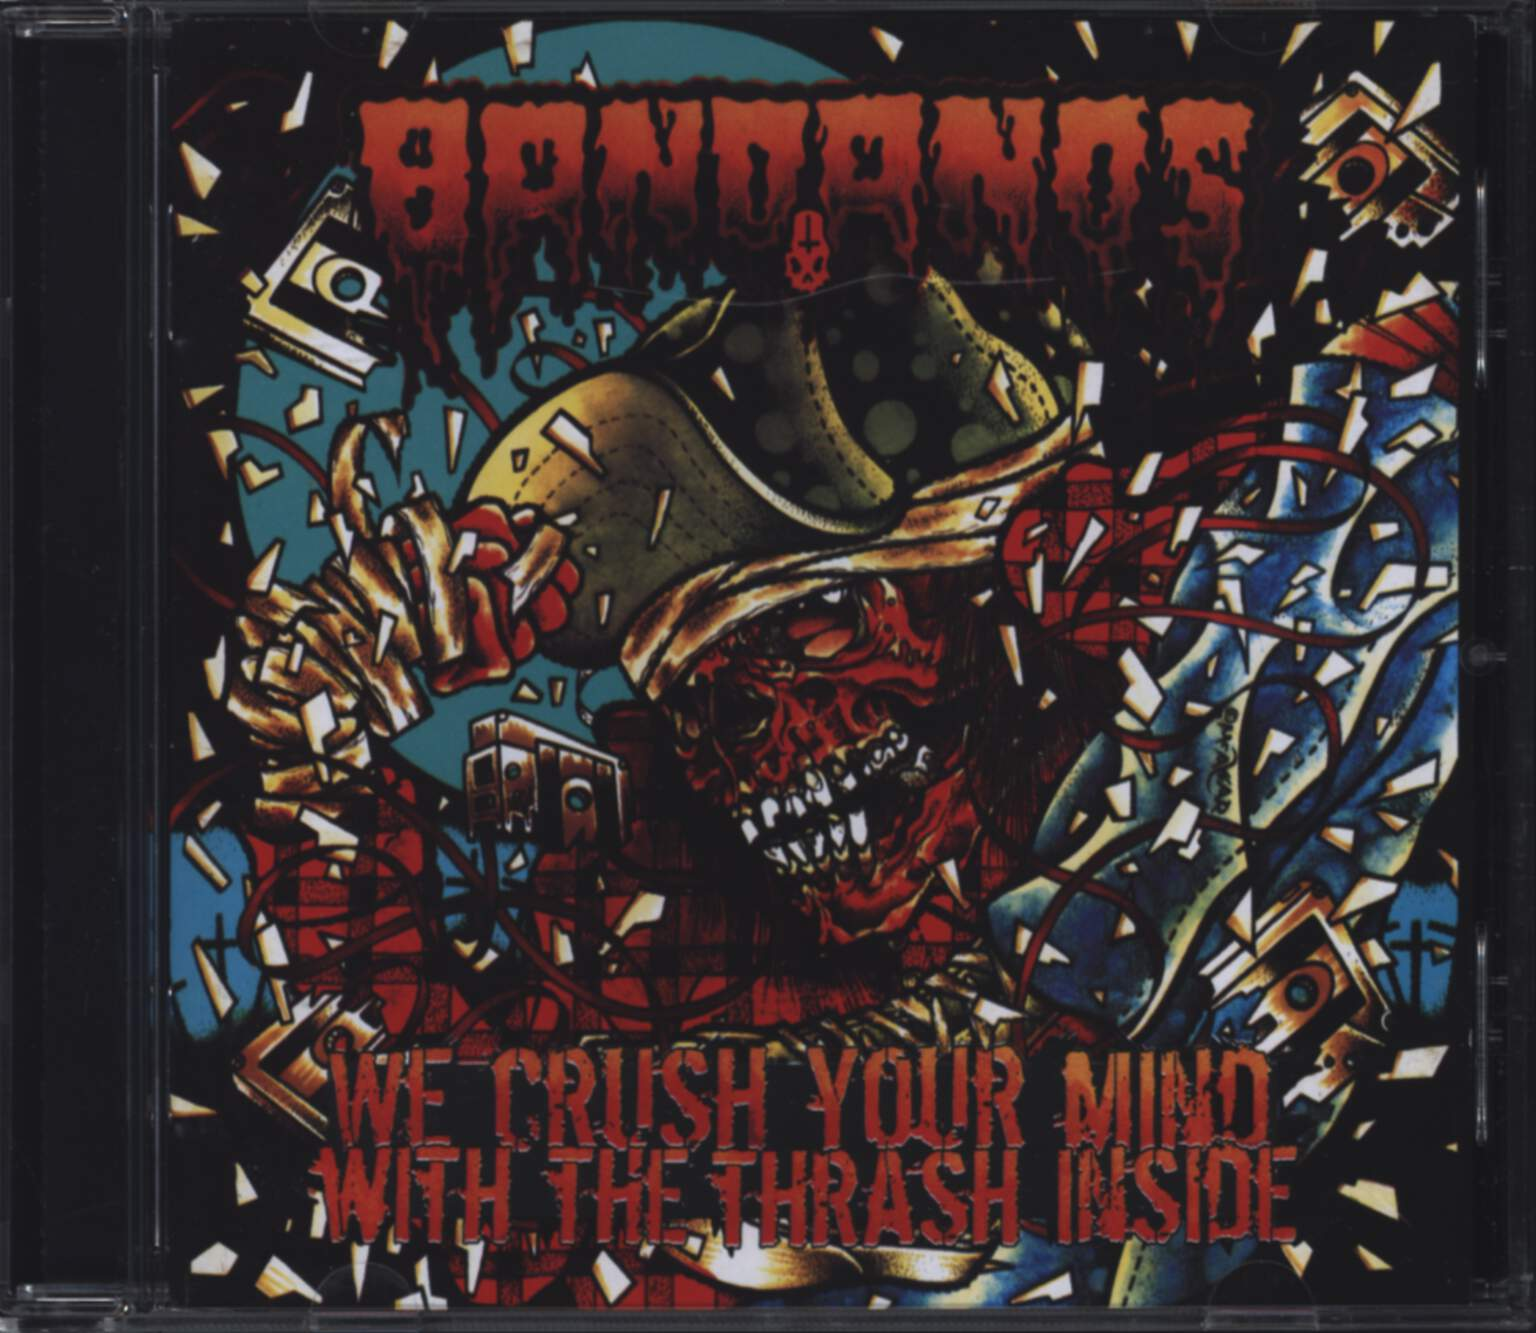 Bandanos: We Crush Your Mind With The Thrash Inside, CD